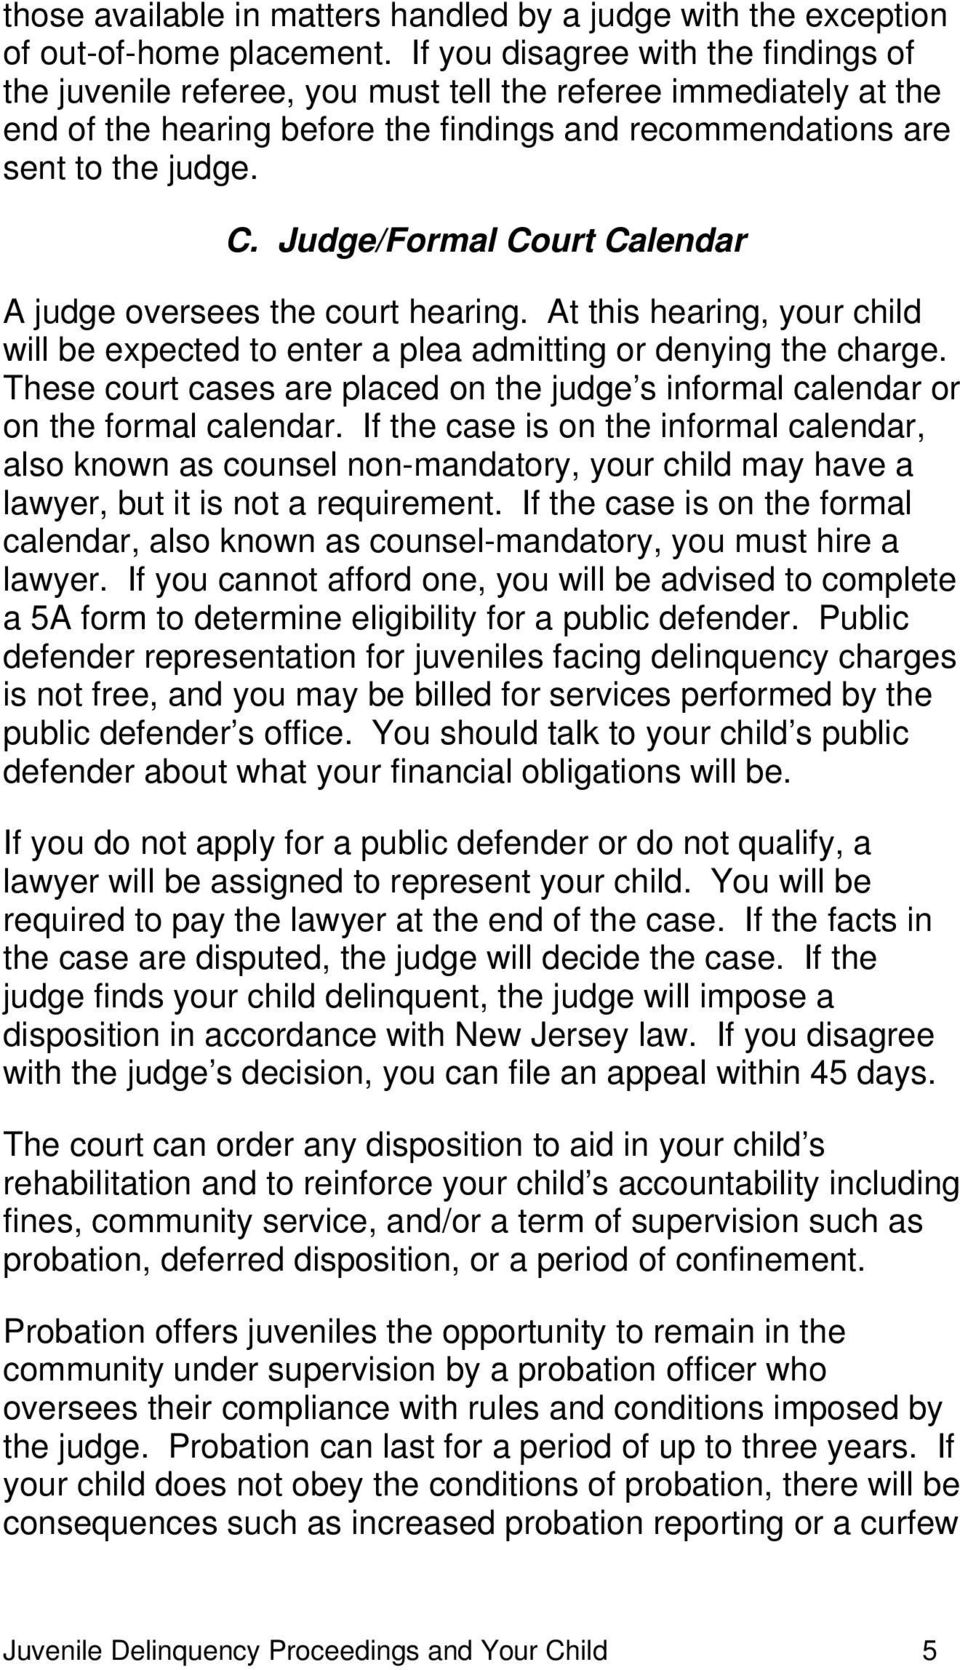 Judge/Formal Court Calendar A judge oversees the court hearing. At this hearing, your child will be expected to enter a plea admitting or denying the charge.